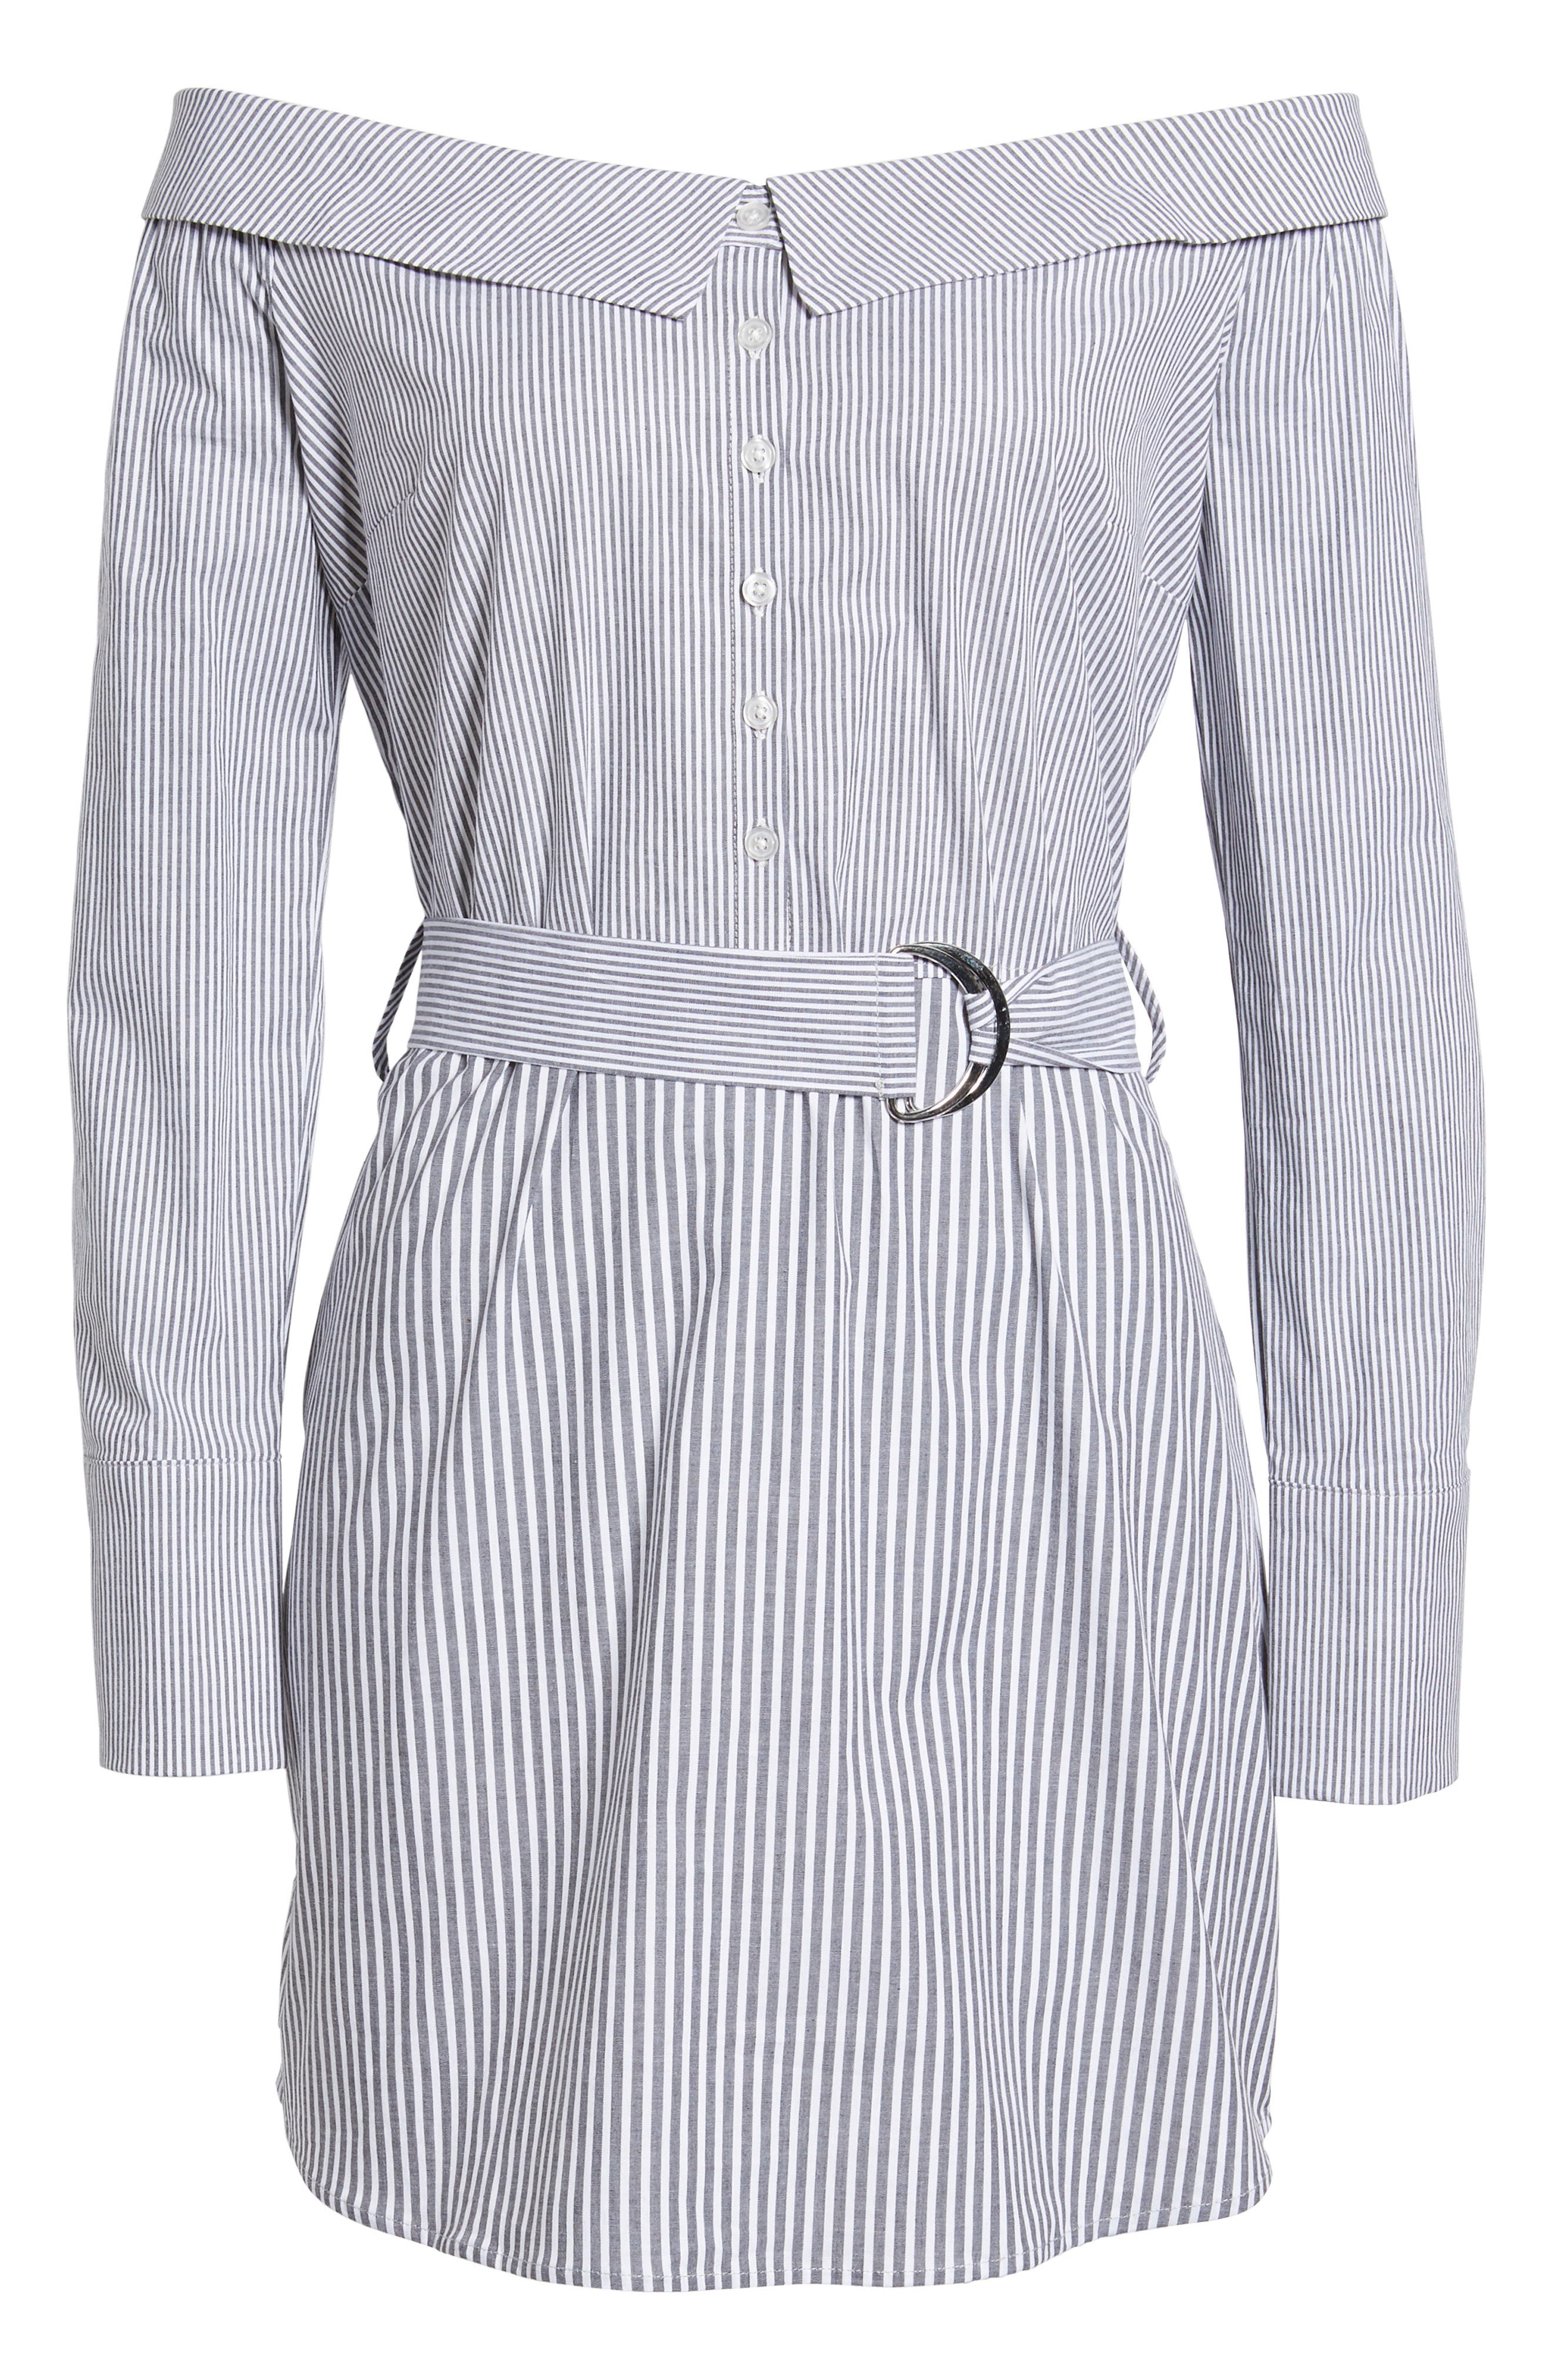 Portrait Neck Stripe Poplin Shirtdress,                             Alternate thumbnail 6, color,                             002